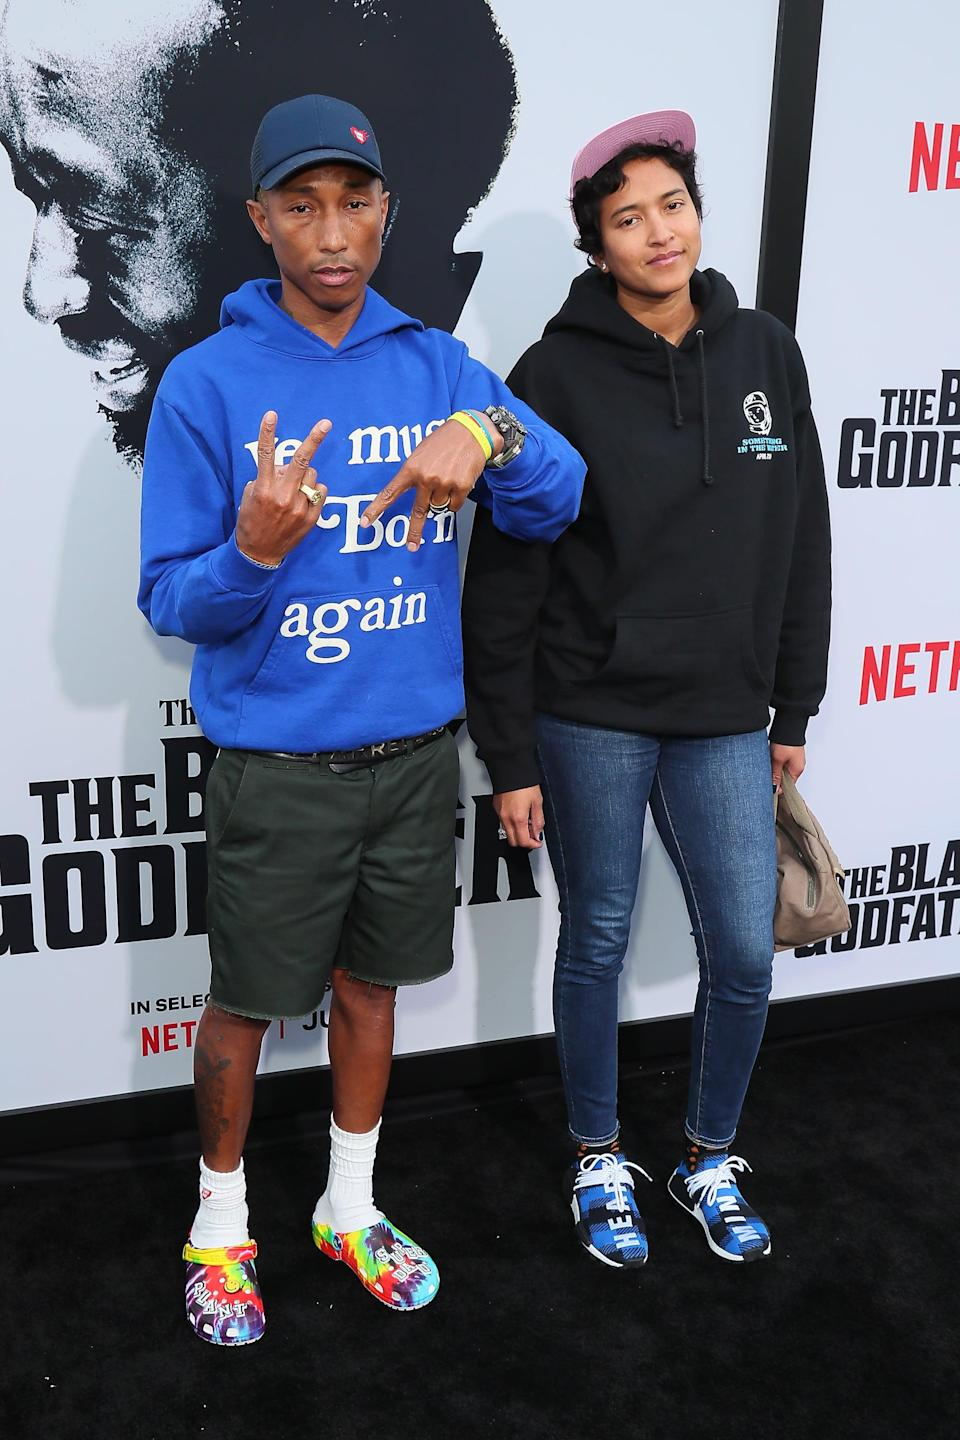 <p>Pharrell wearing tie-dye Crocs on the red carpet with shorts and a hoodie.</p>